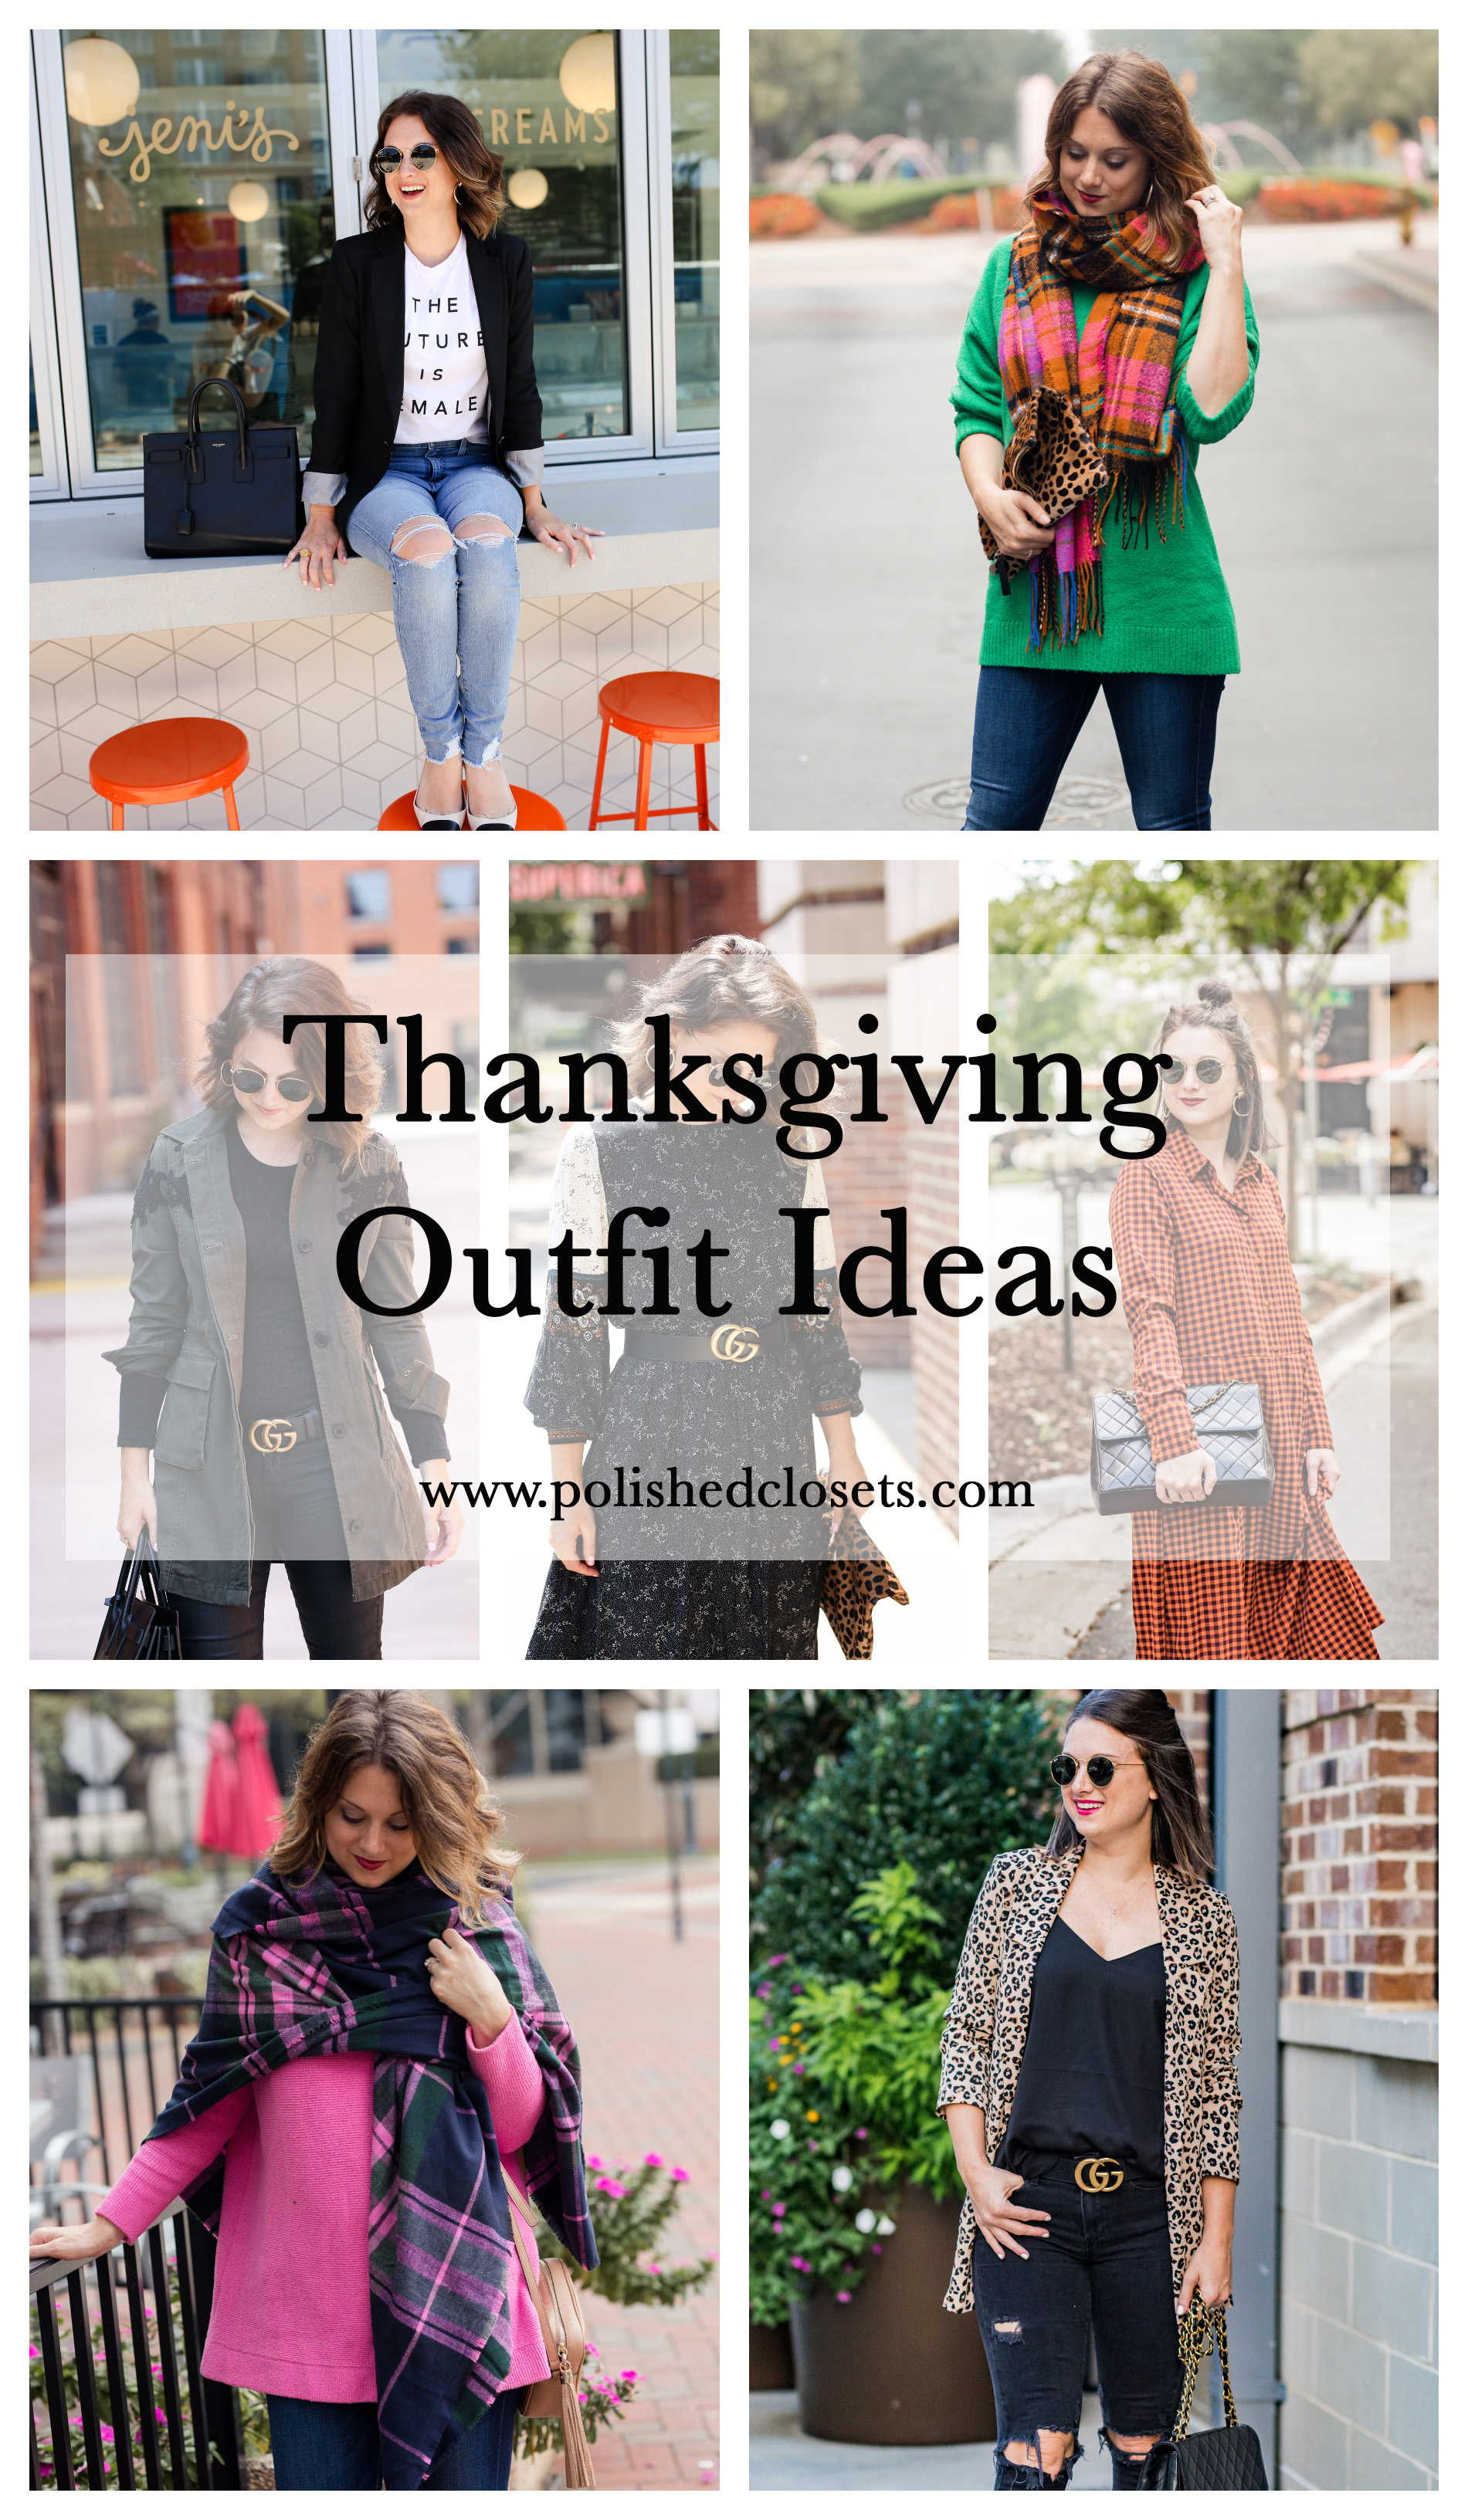 Forum on this topic: 21 Comfy Stylish Thanksgiving Outfit Ideas, 21-comfy-stylish-thanksgiving-outfit-ideas/